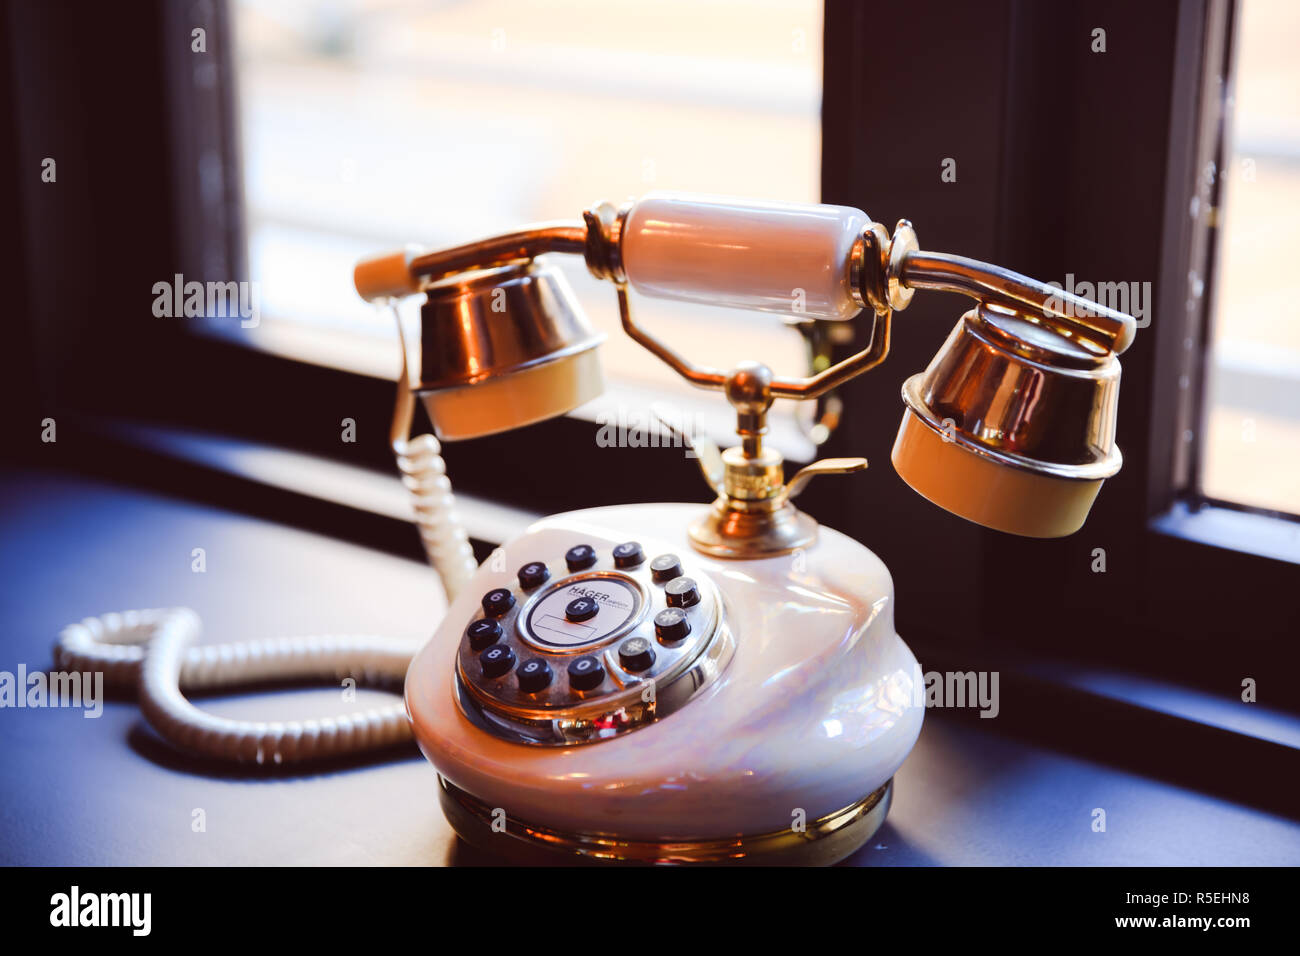 Vintage telephone with pearly facade - Stock Image